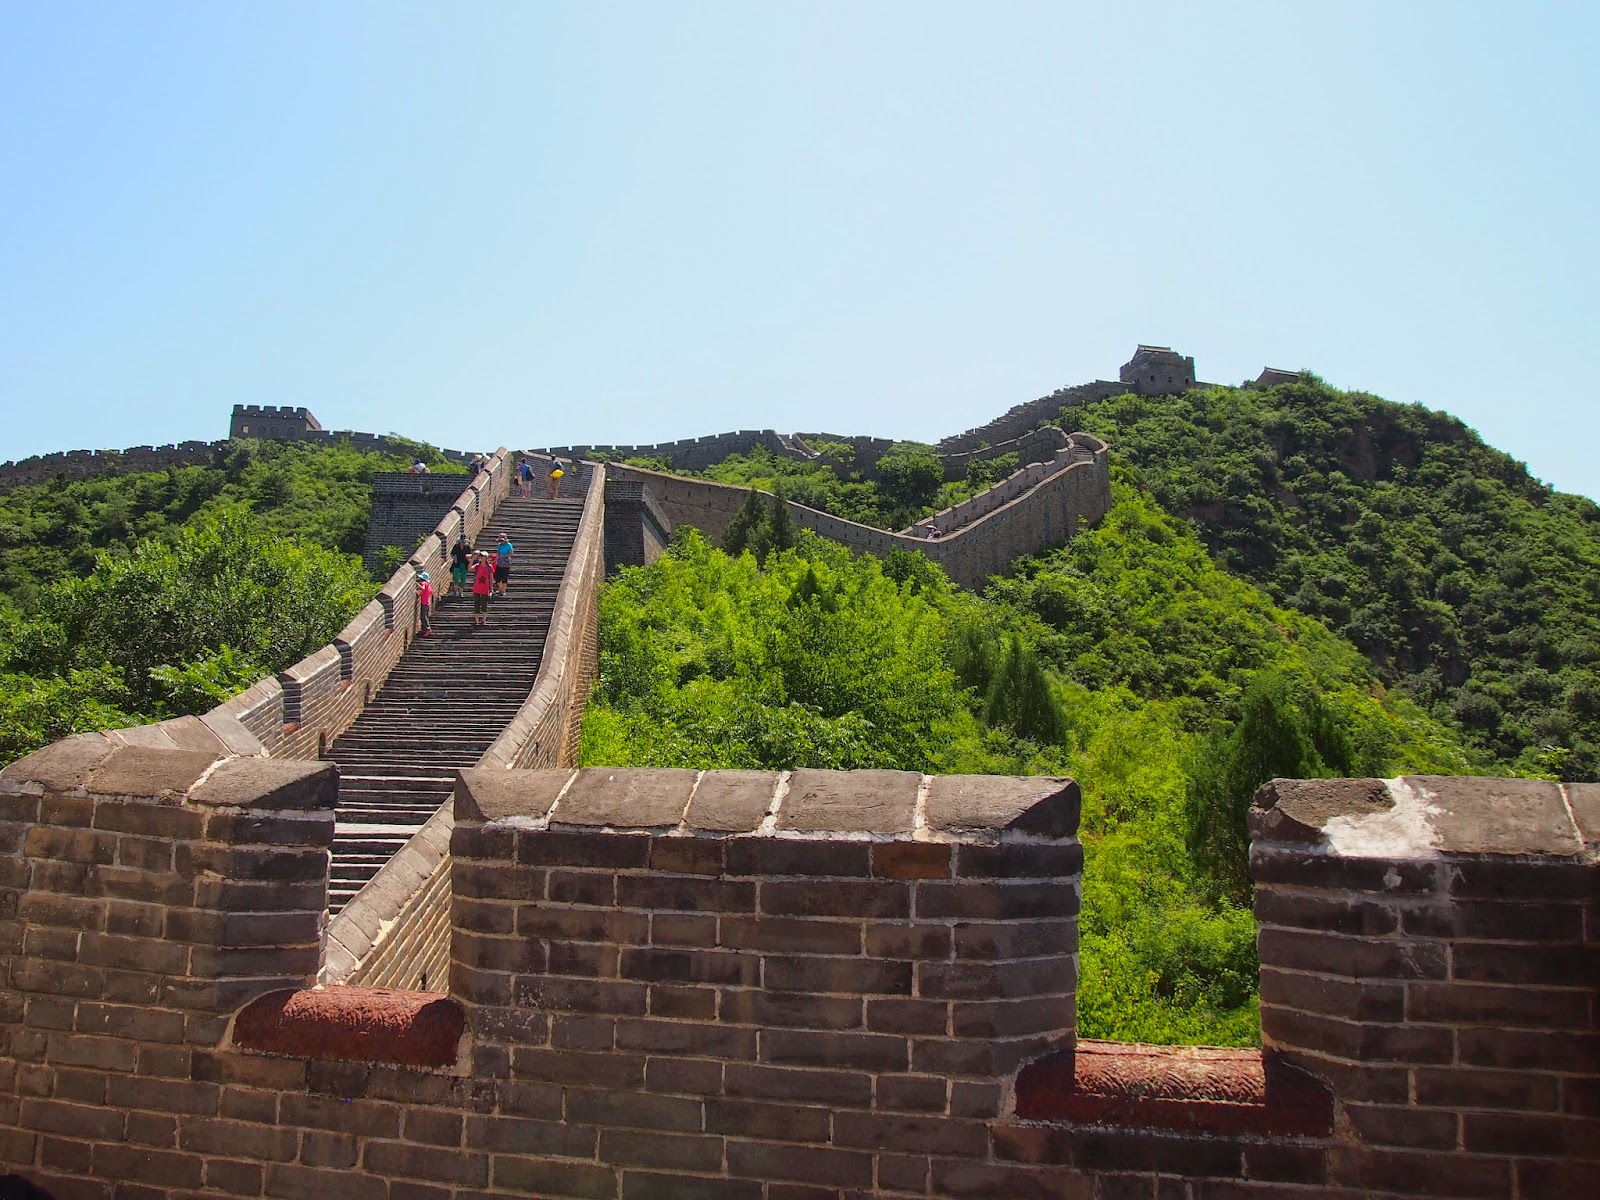 The Great Wall of China with clear skies